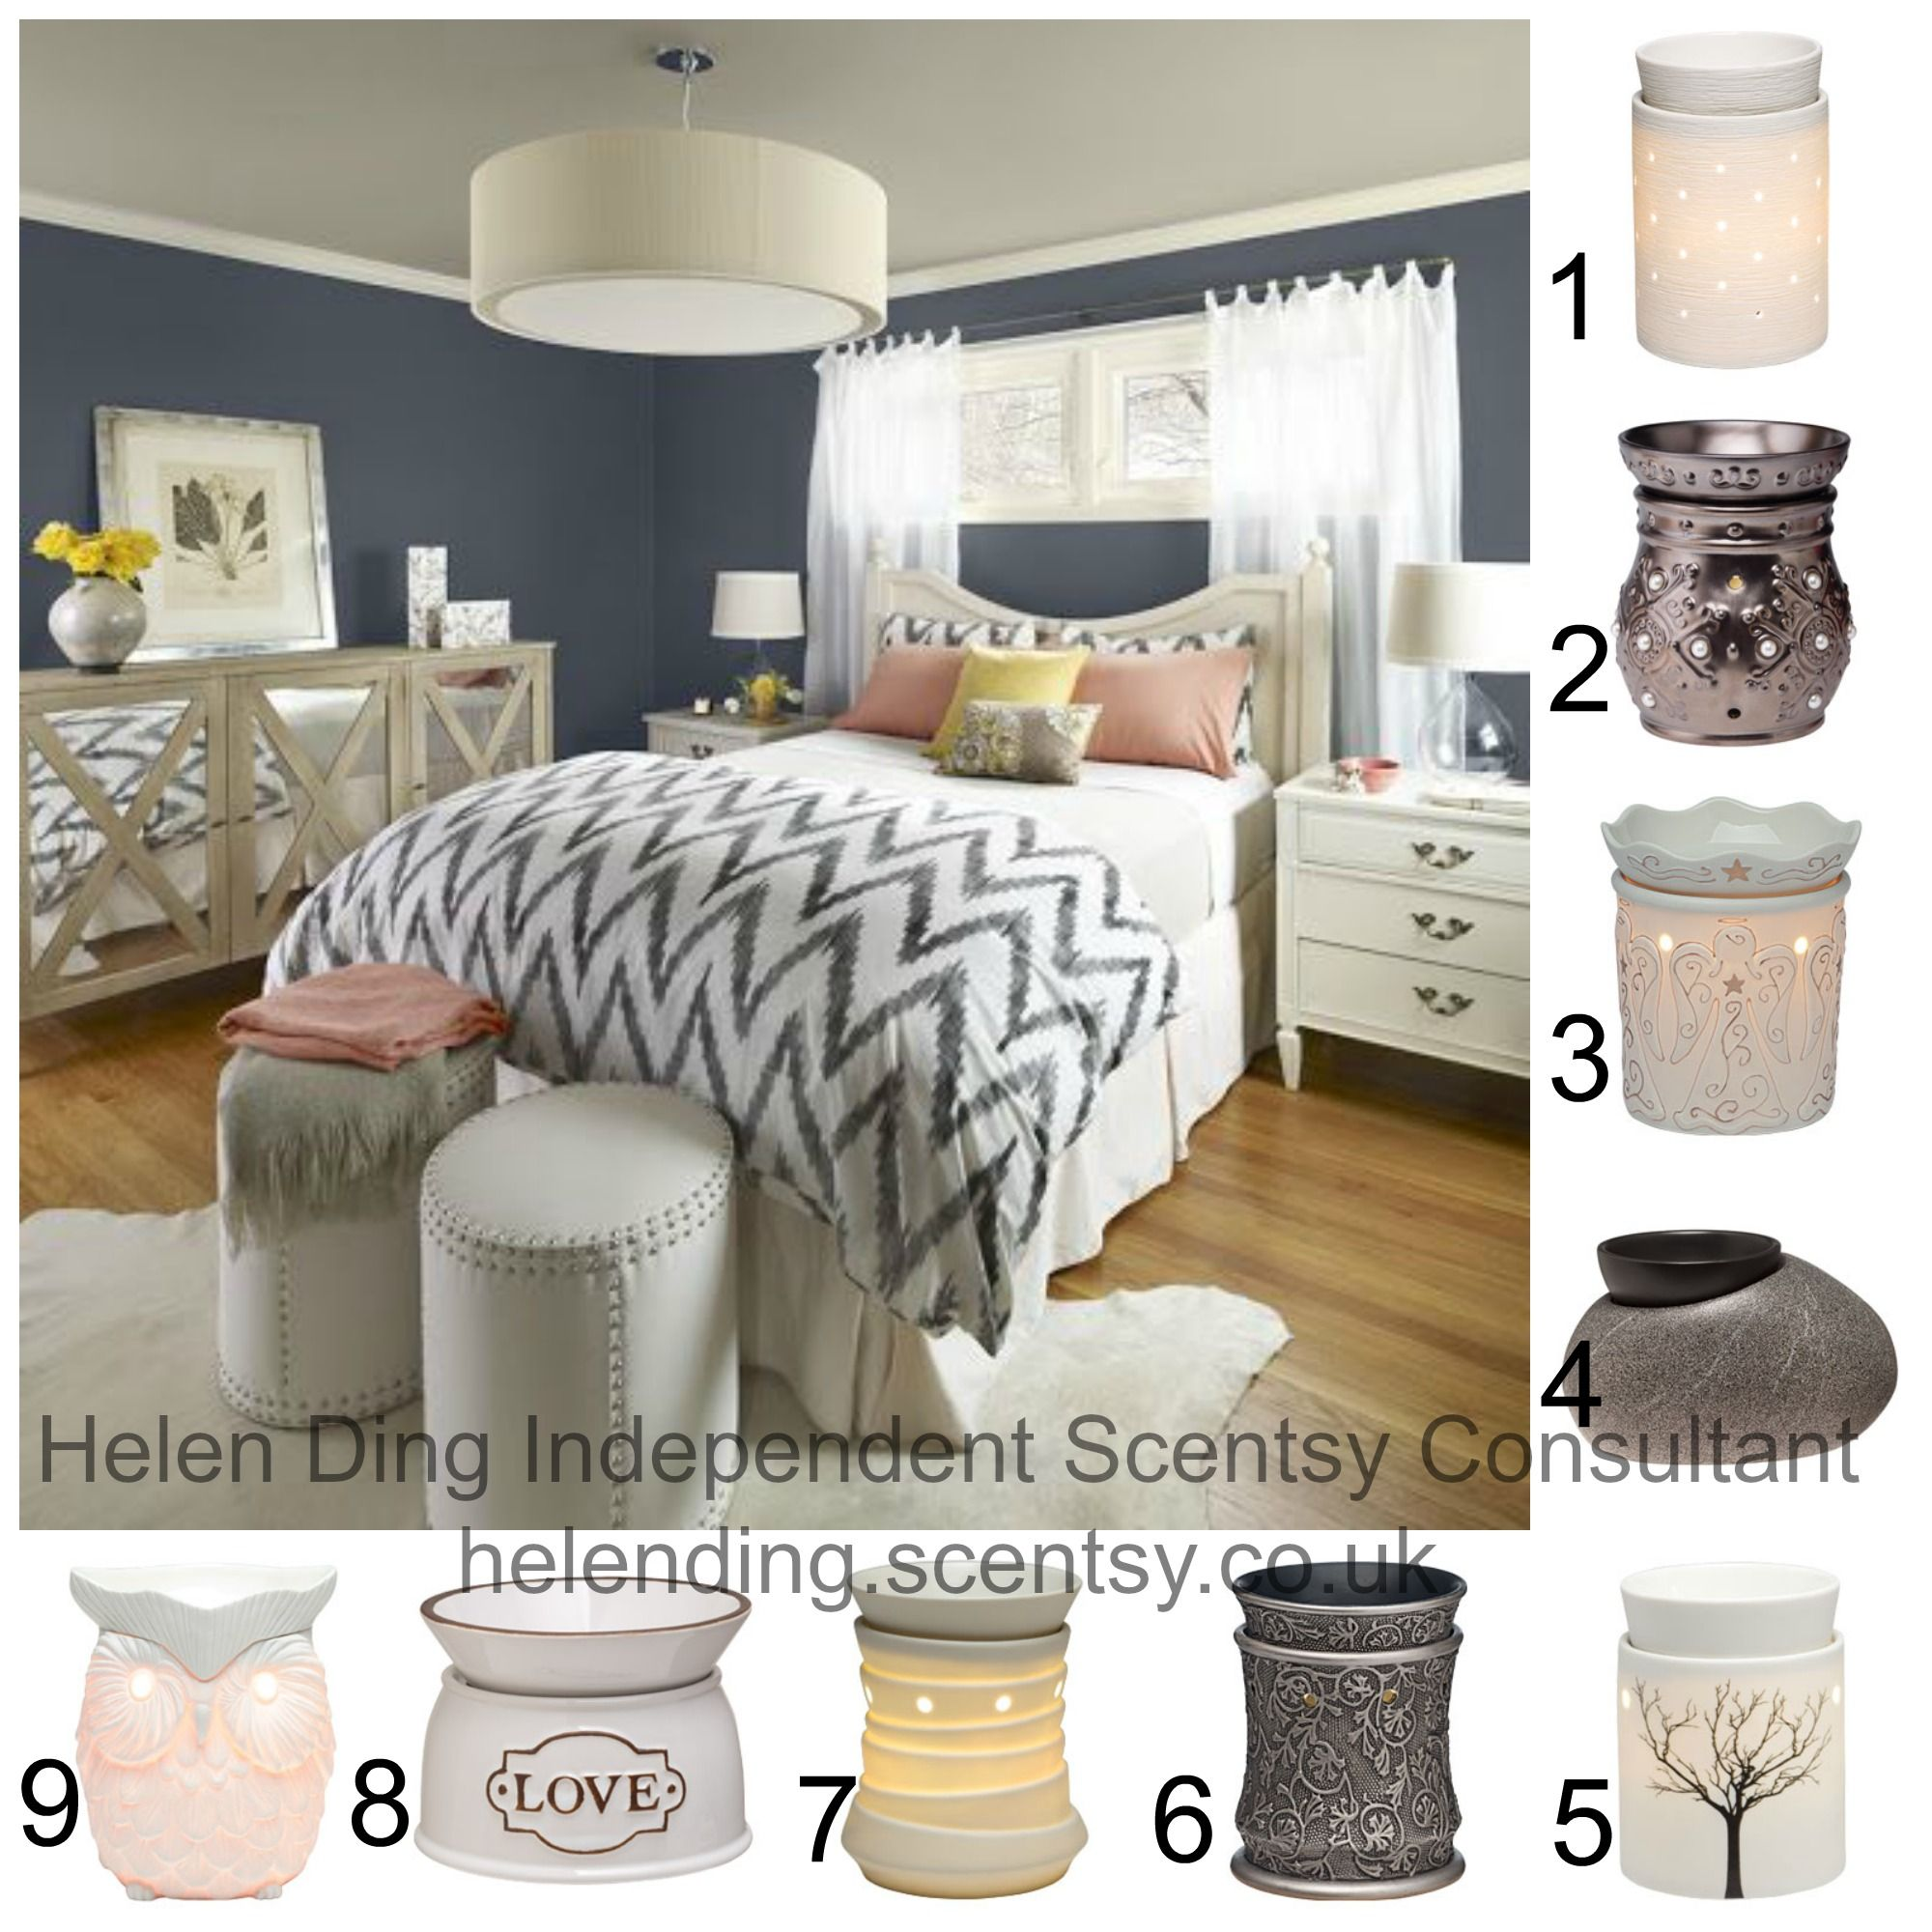 Which Scentsy Warmer Would You